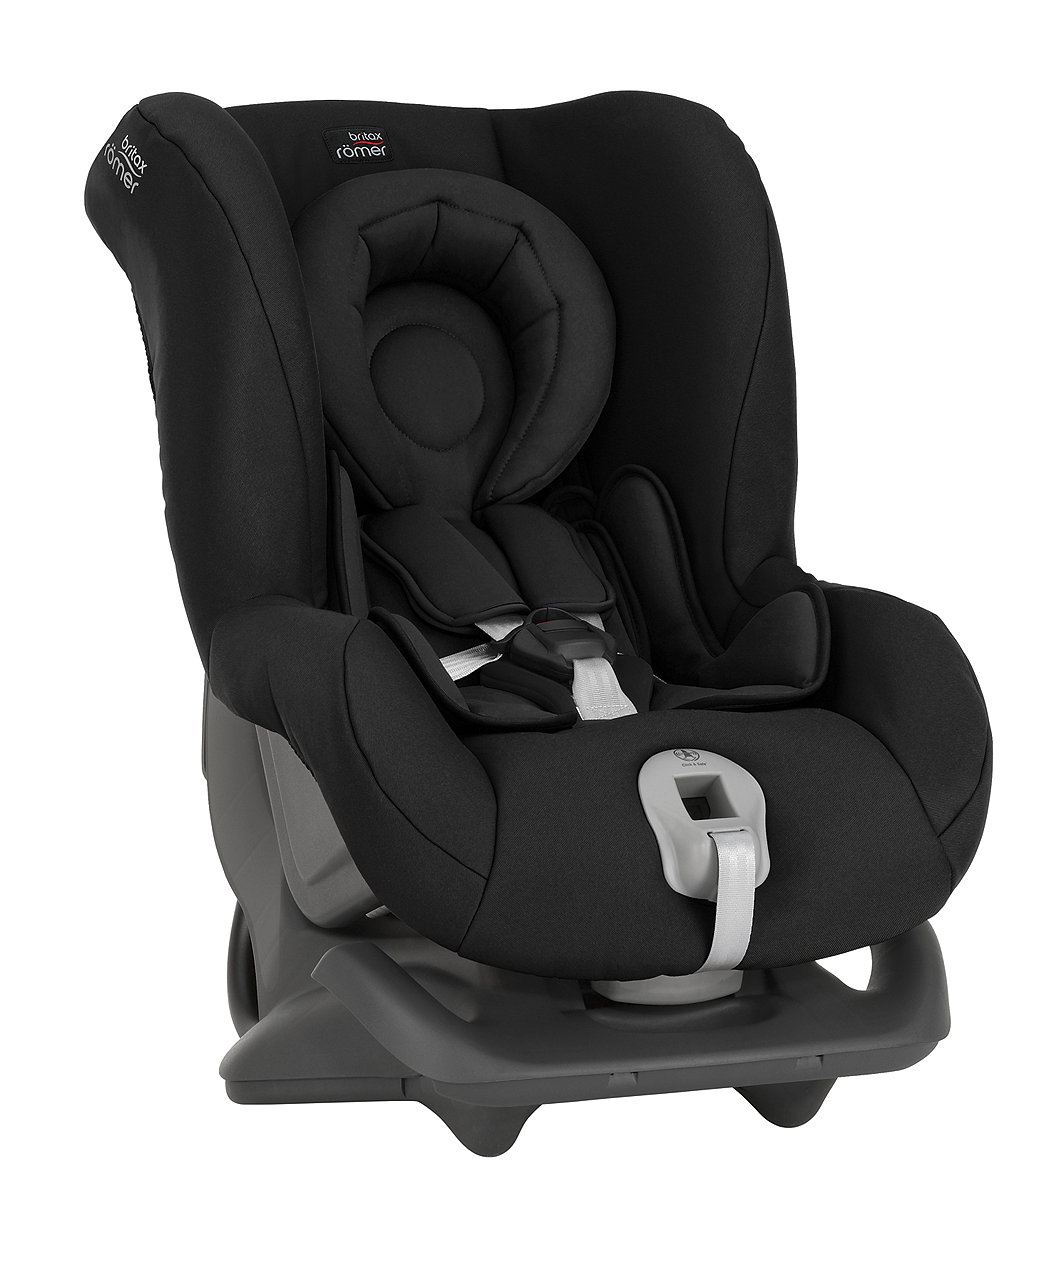 britax romer first class plus combination car seat. Black Bedroom Furniture Sets. Home Design Ideas